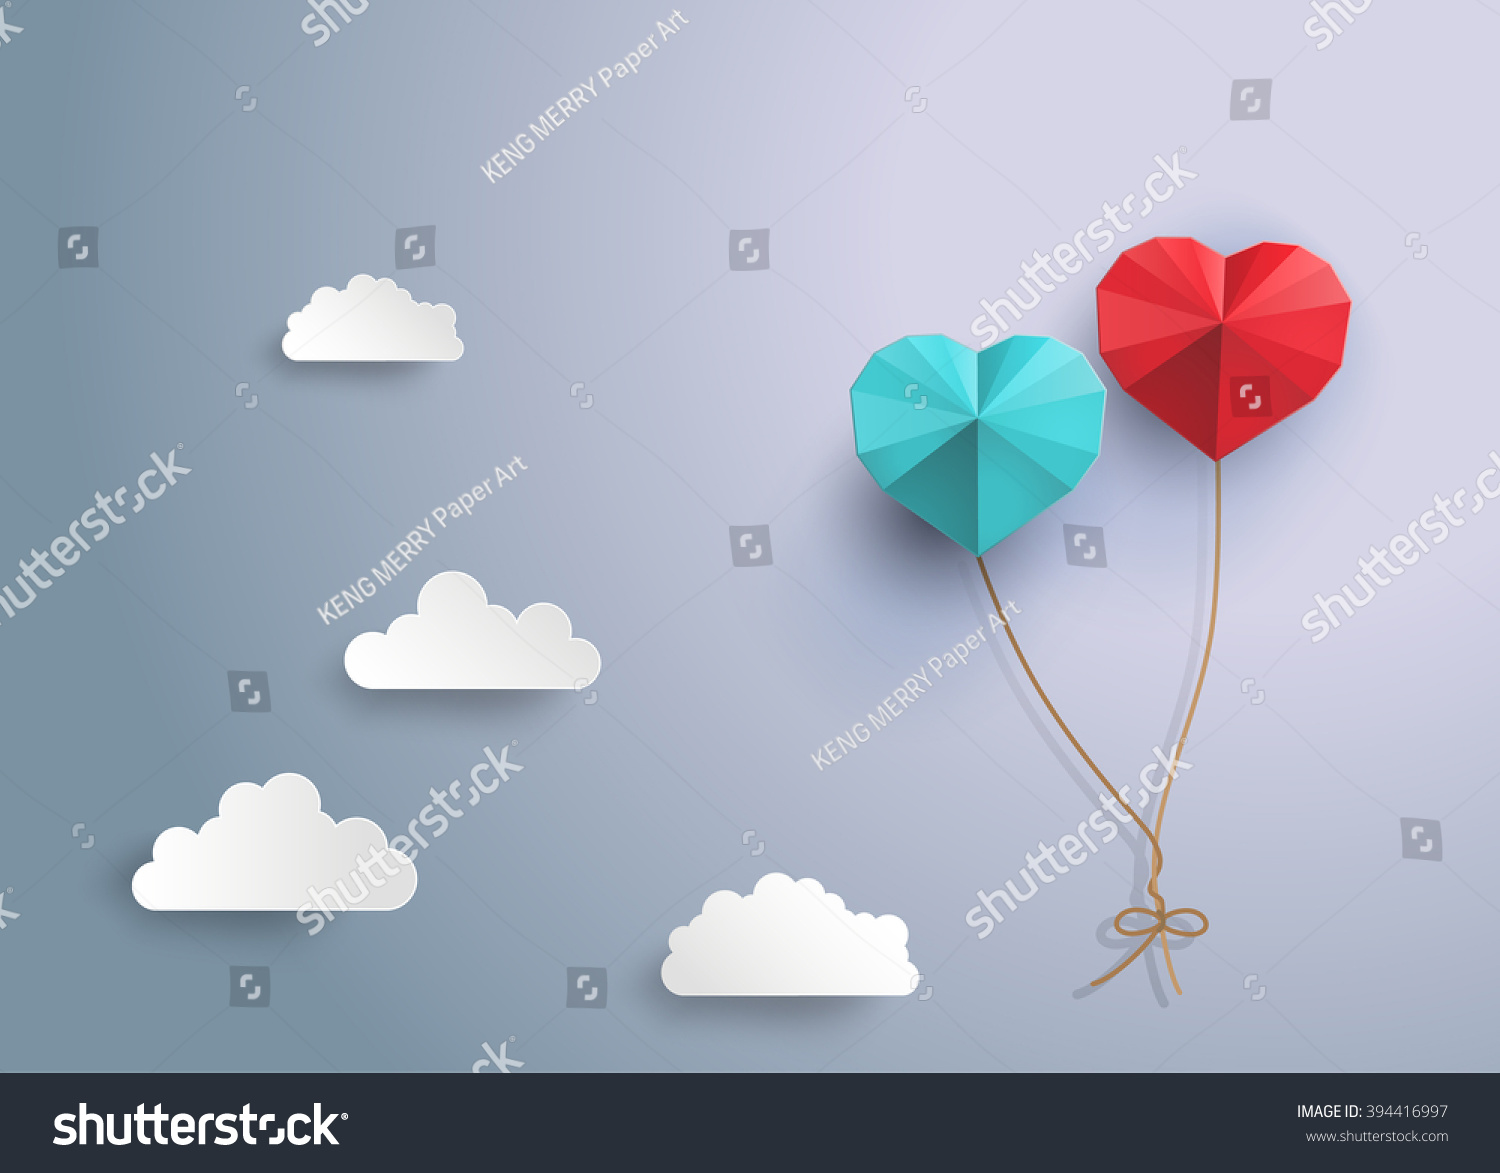 Origami balloon in in the shape of heart.paper art style